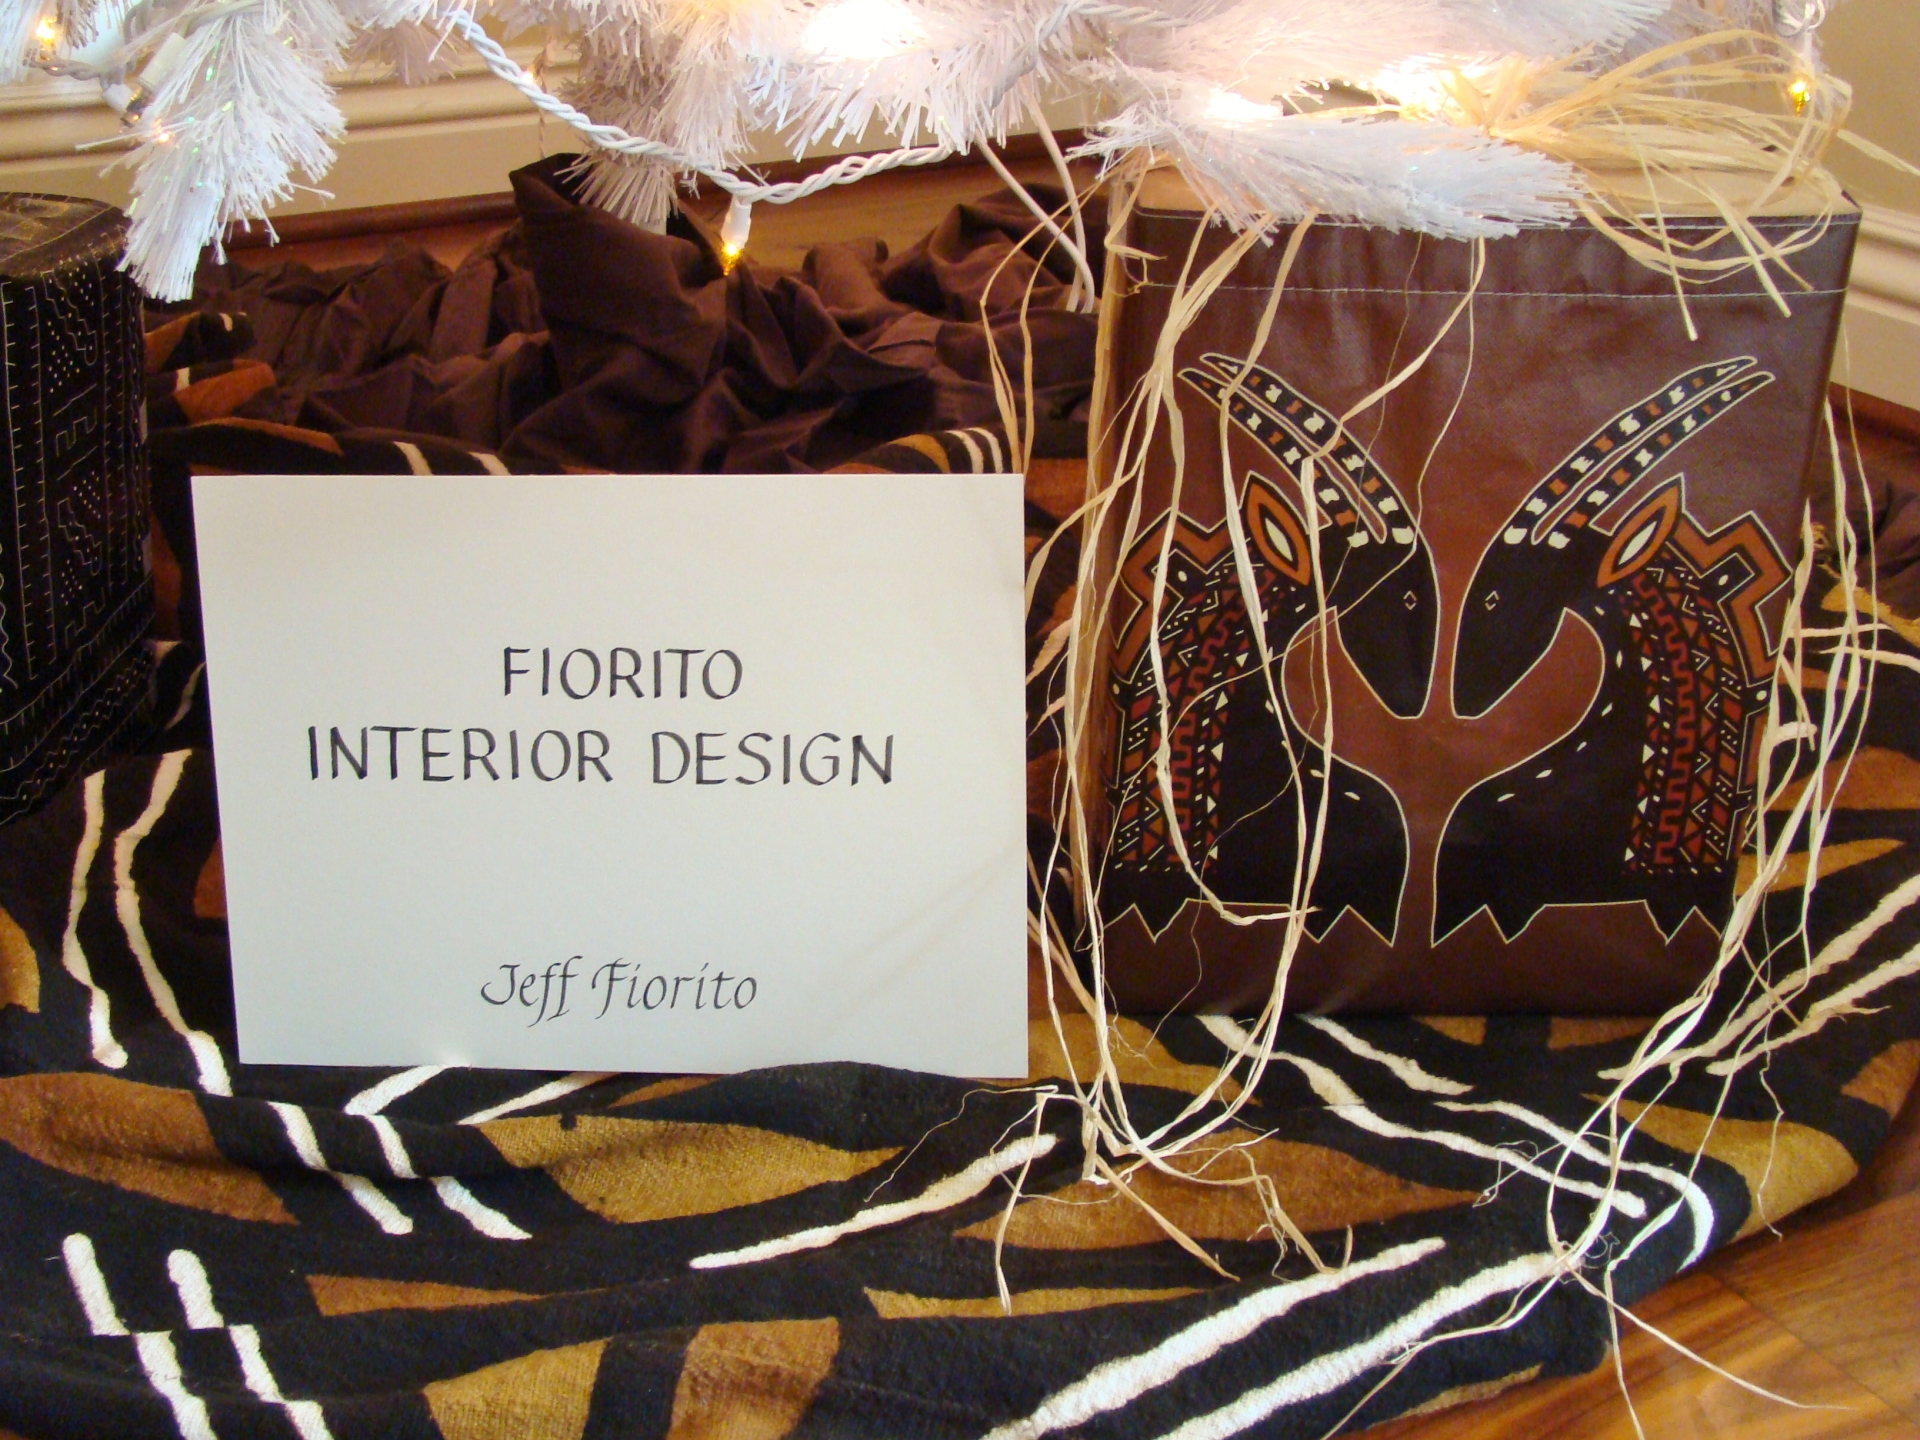 Fiorito Interior Design, interior design, Homes For The Holidays, African, holiday tree, African design wrapping paper, raffia, cowrie shells, mud cloth, bògòlanfini